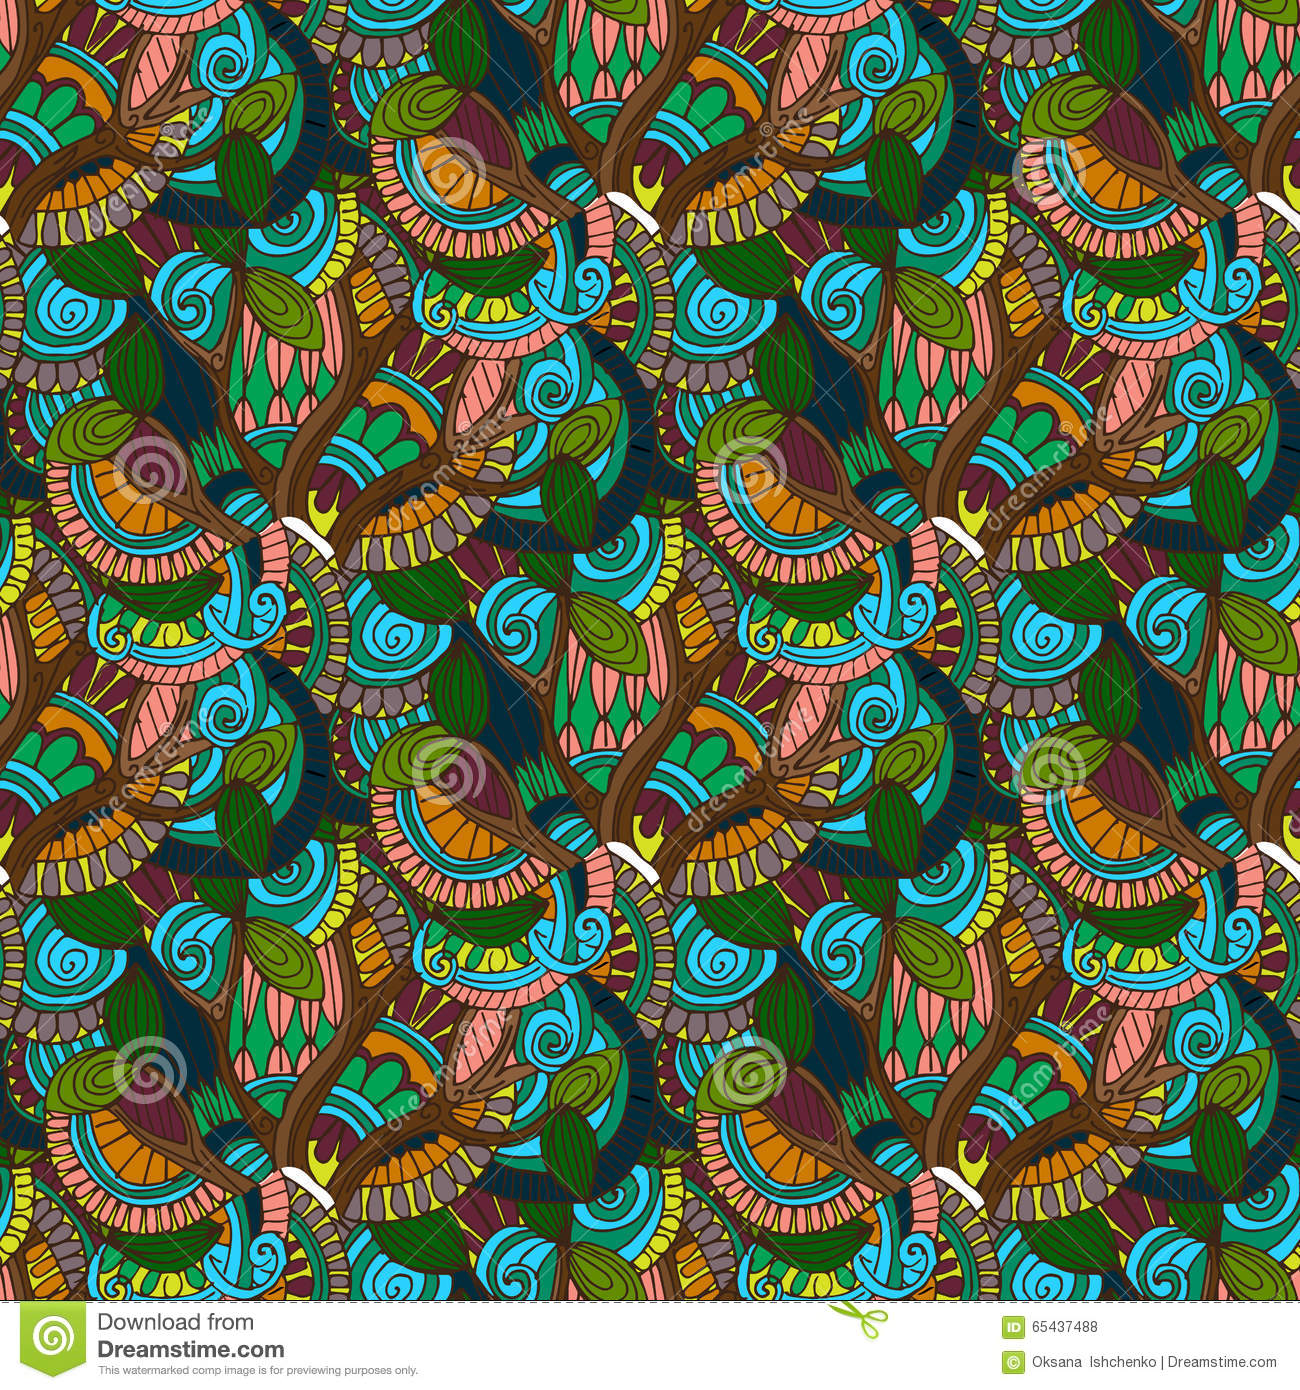 Hand-drawn illustrations. Color natural abstraction. Seamless pattern.